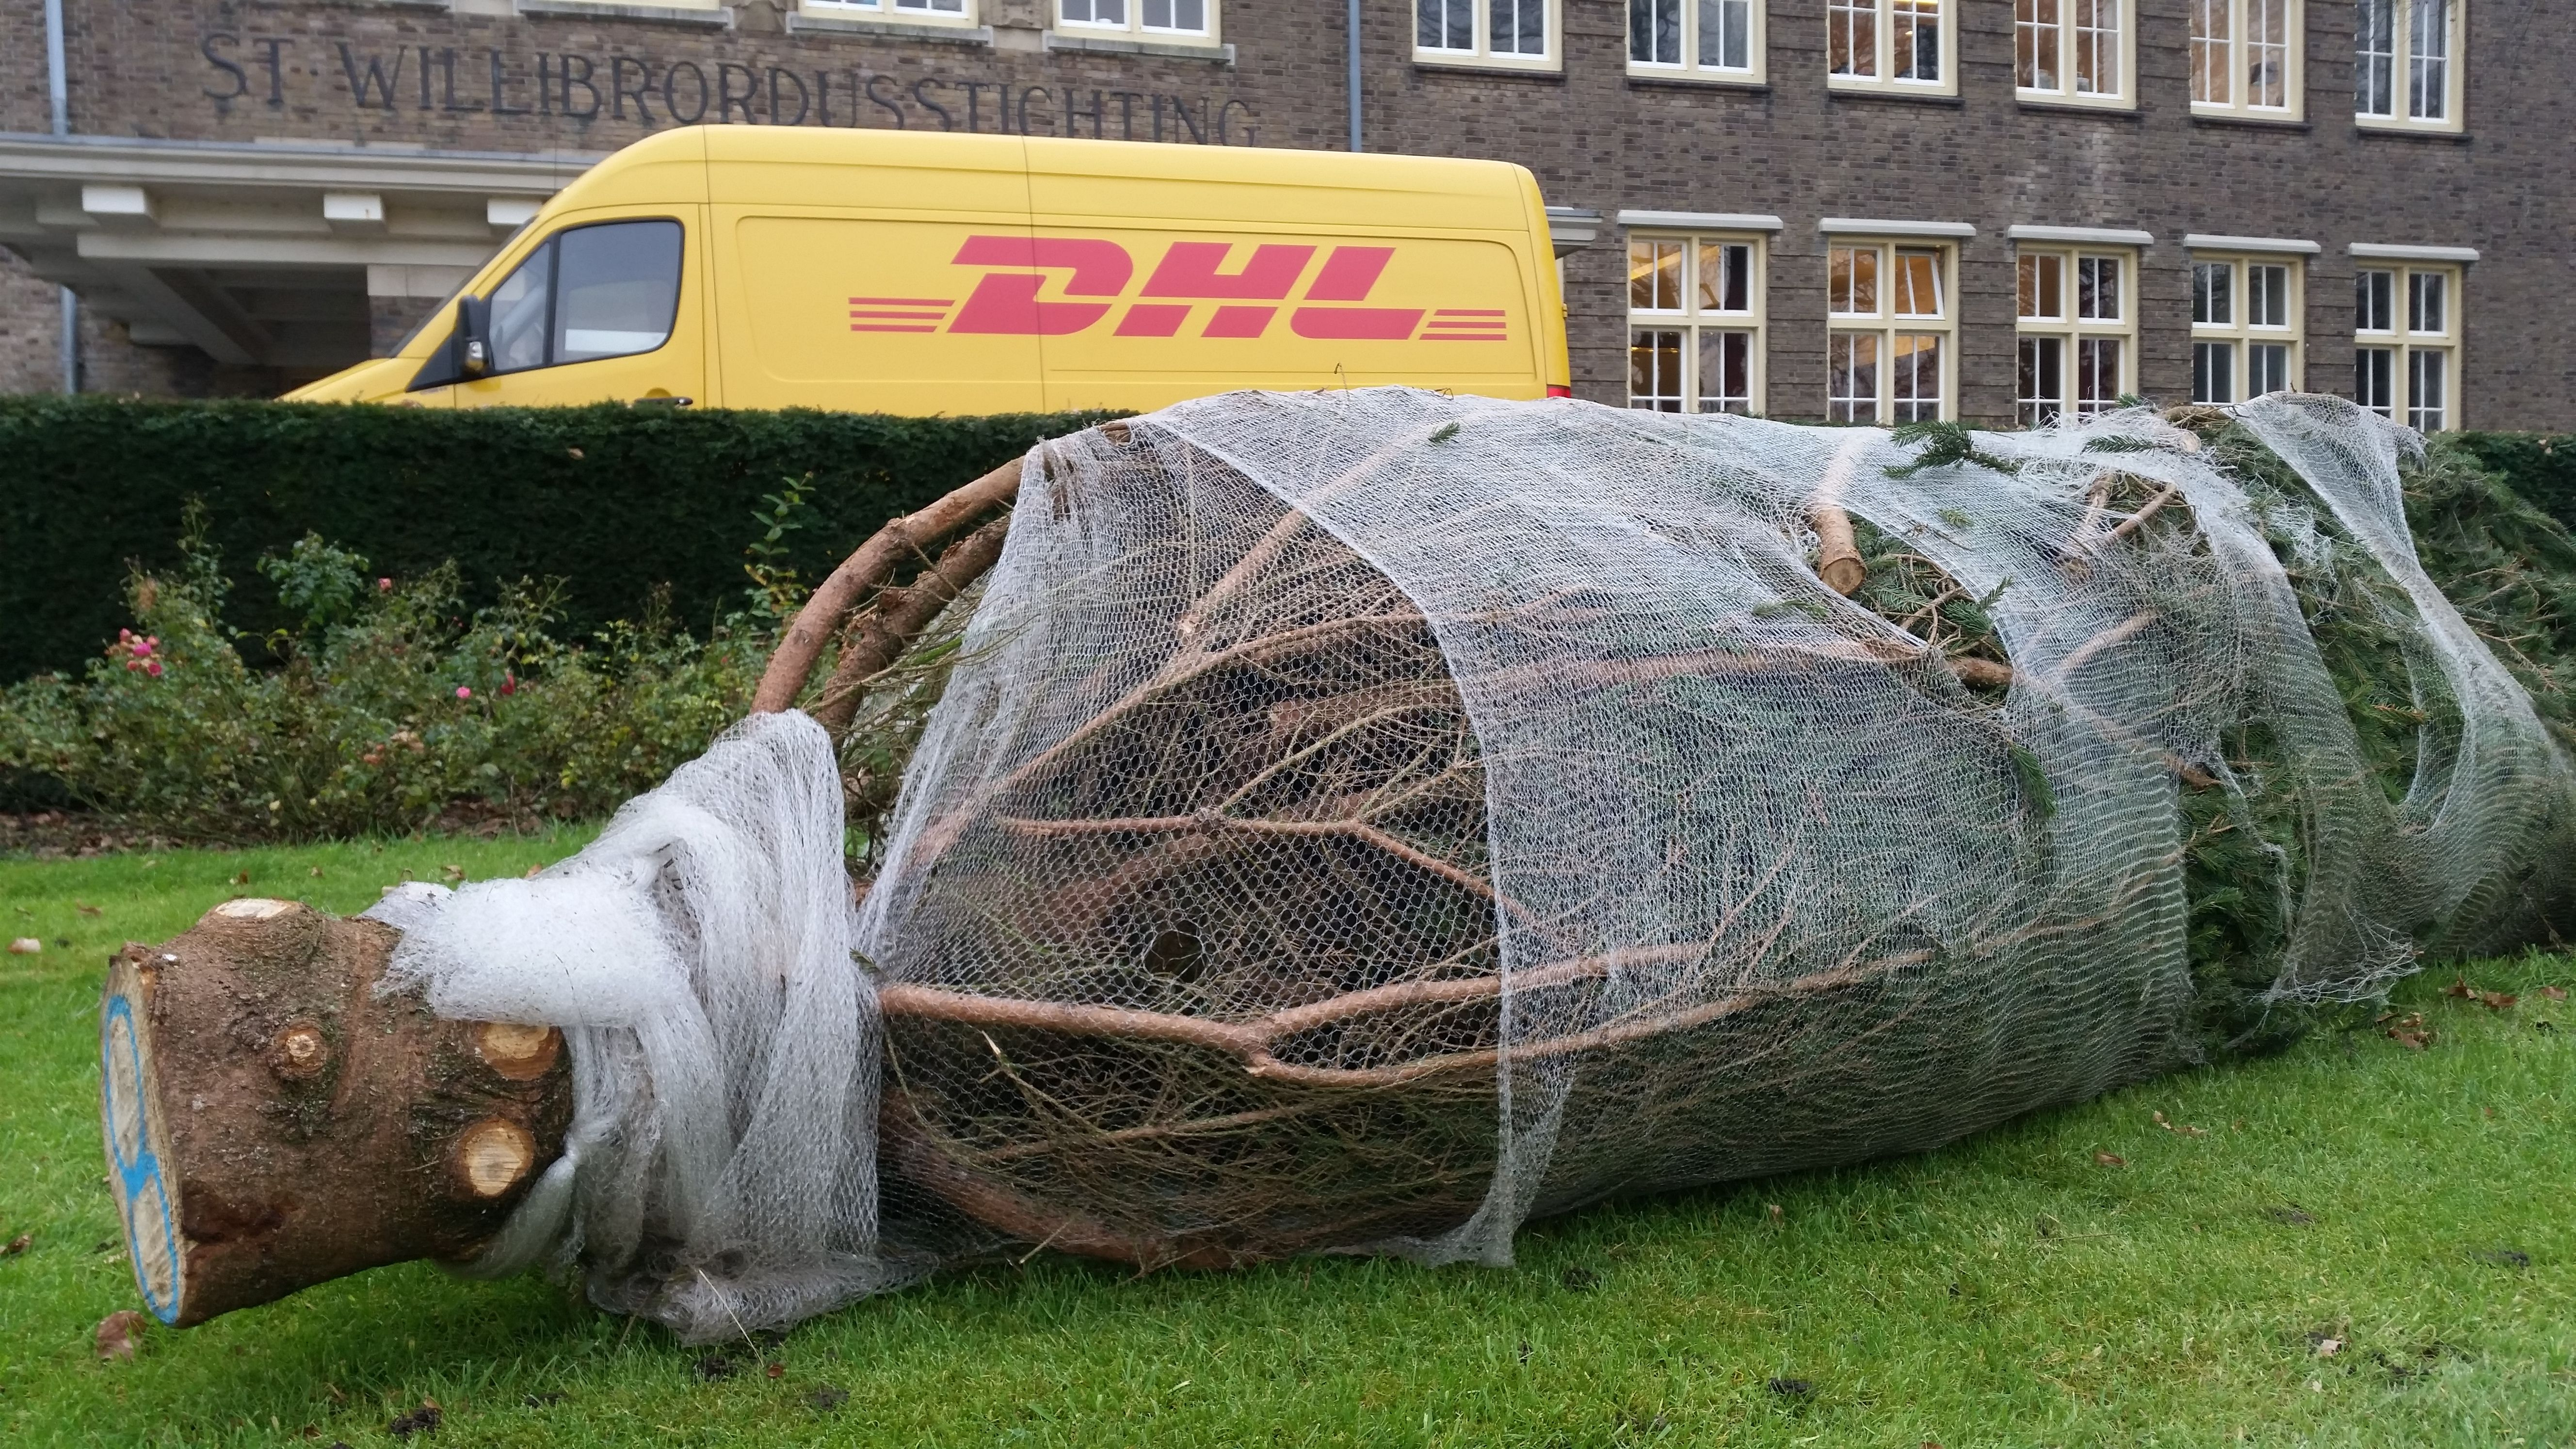 Some #deliverydriver that is    #christmastree #logistics